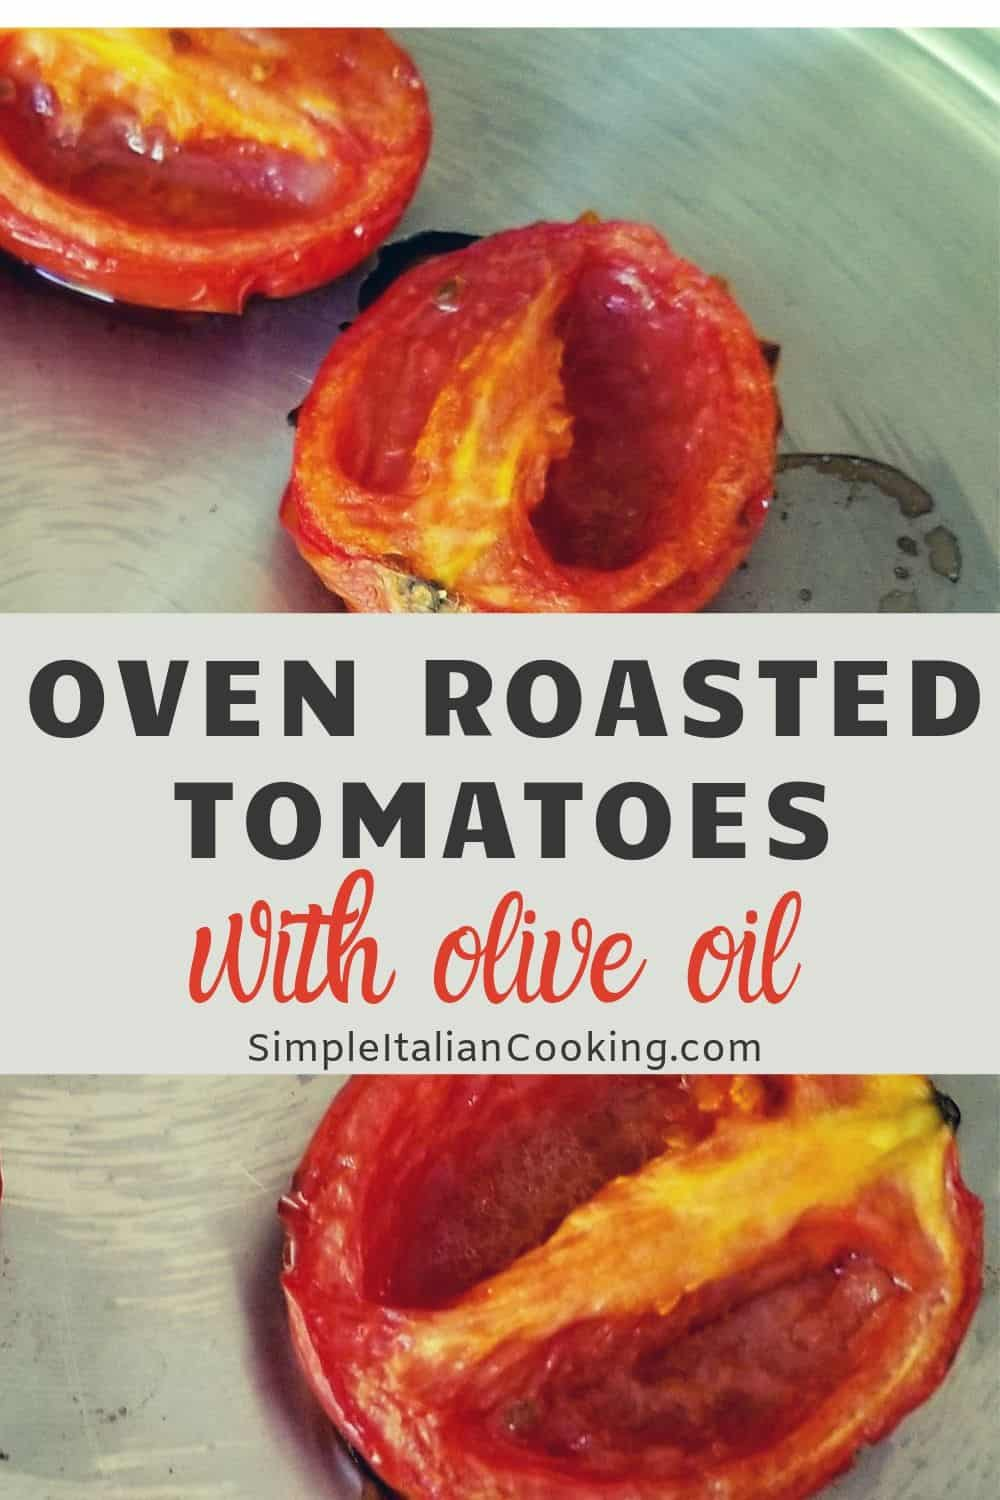 Oven roasted tomatoes are easy to make, especially this Italian version with olive oil and balsamic. Tastes amazing! Here\'s a quick roast method for Roma tomatoes that turns out great.  Goes great with a salad, lunch, or snack.  #ovenroastedtomatoes #roastedtomatoes #ovenroastedtomatoesroma #quickovenroastedtomatoes #italianrecipes